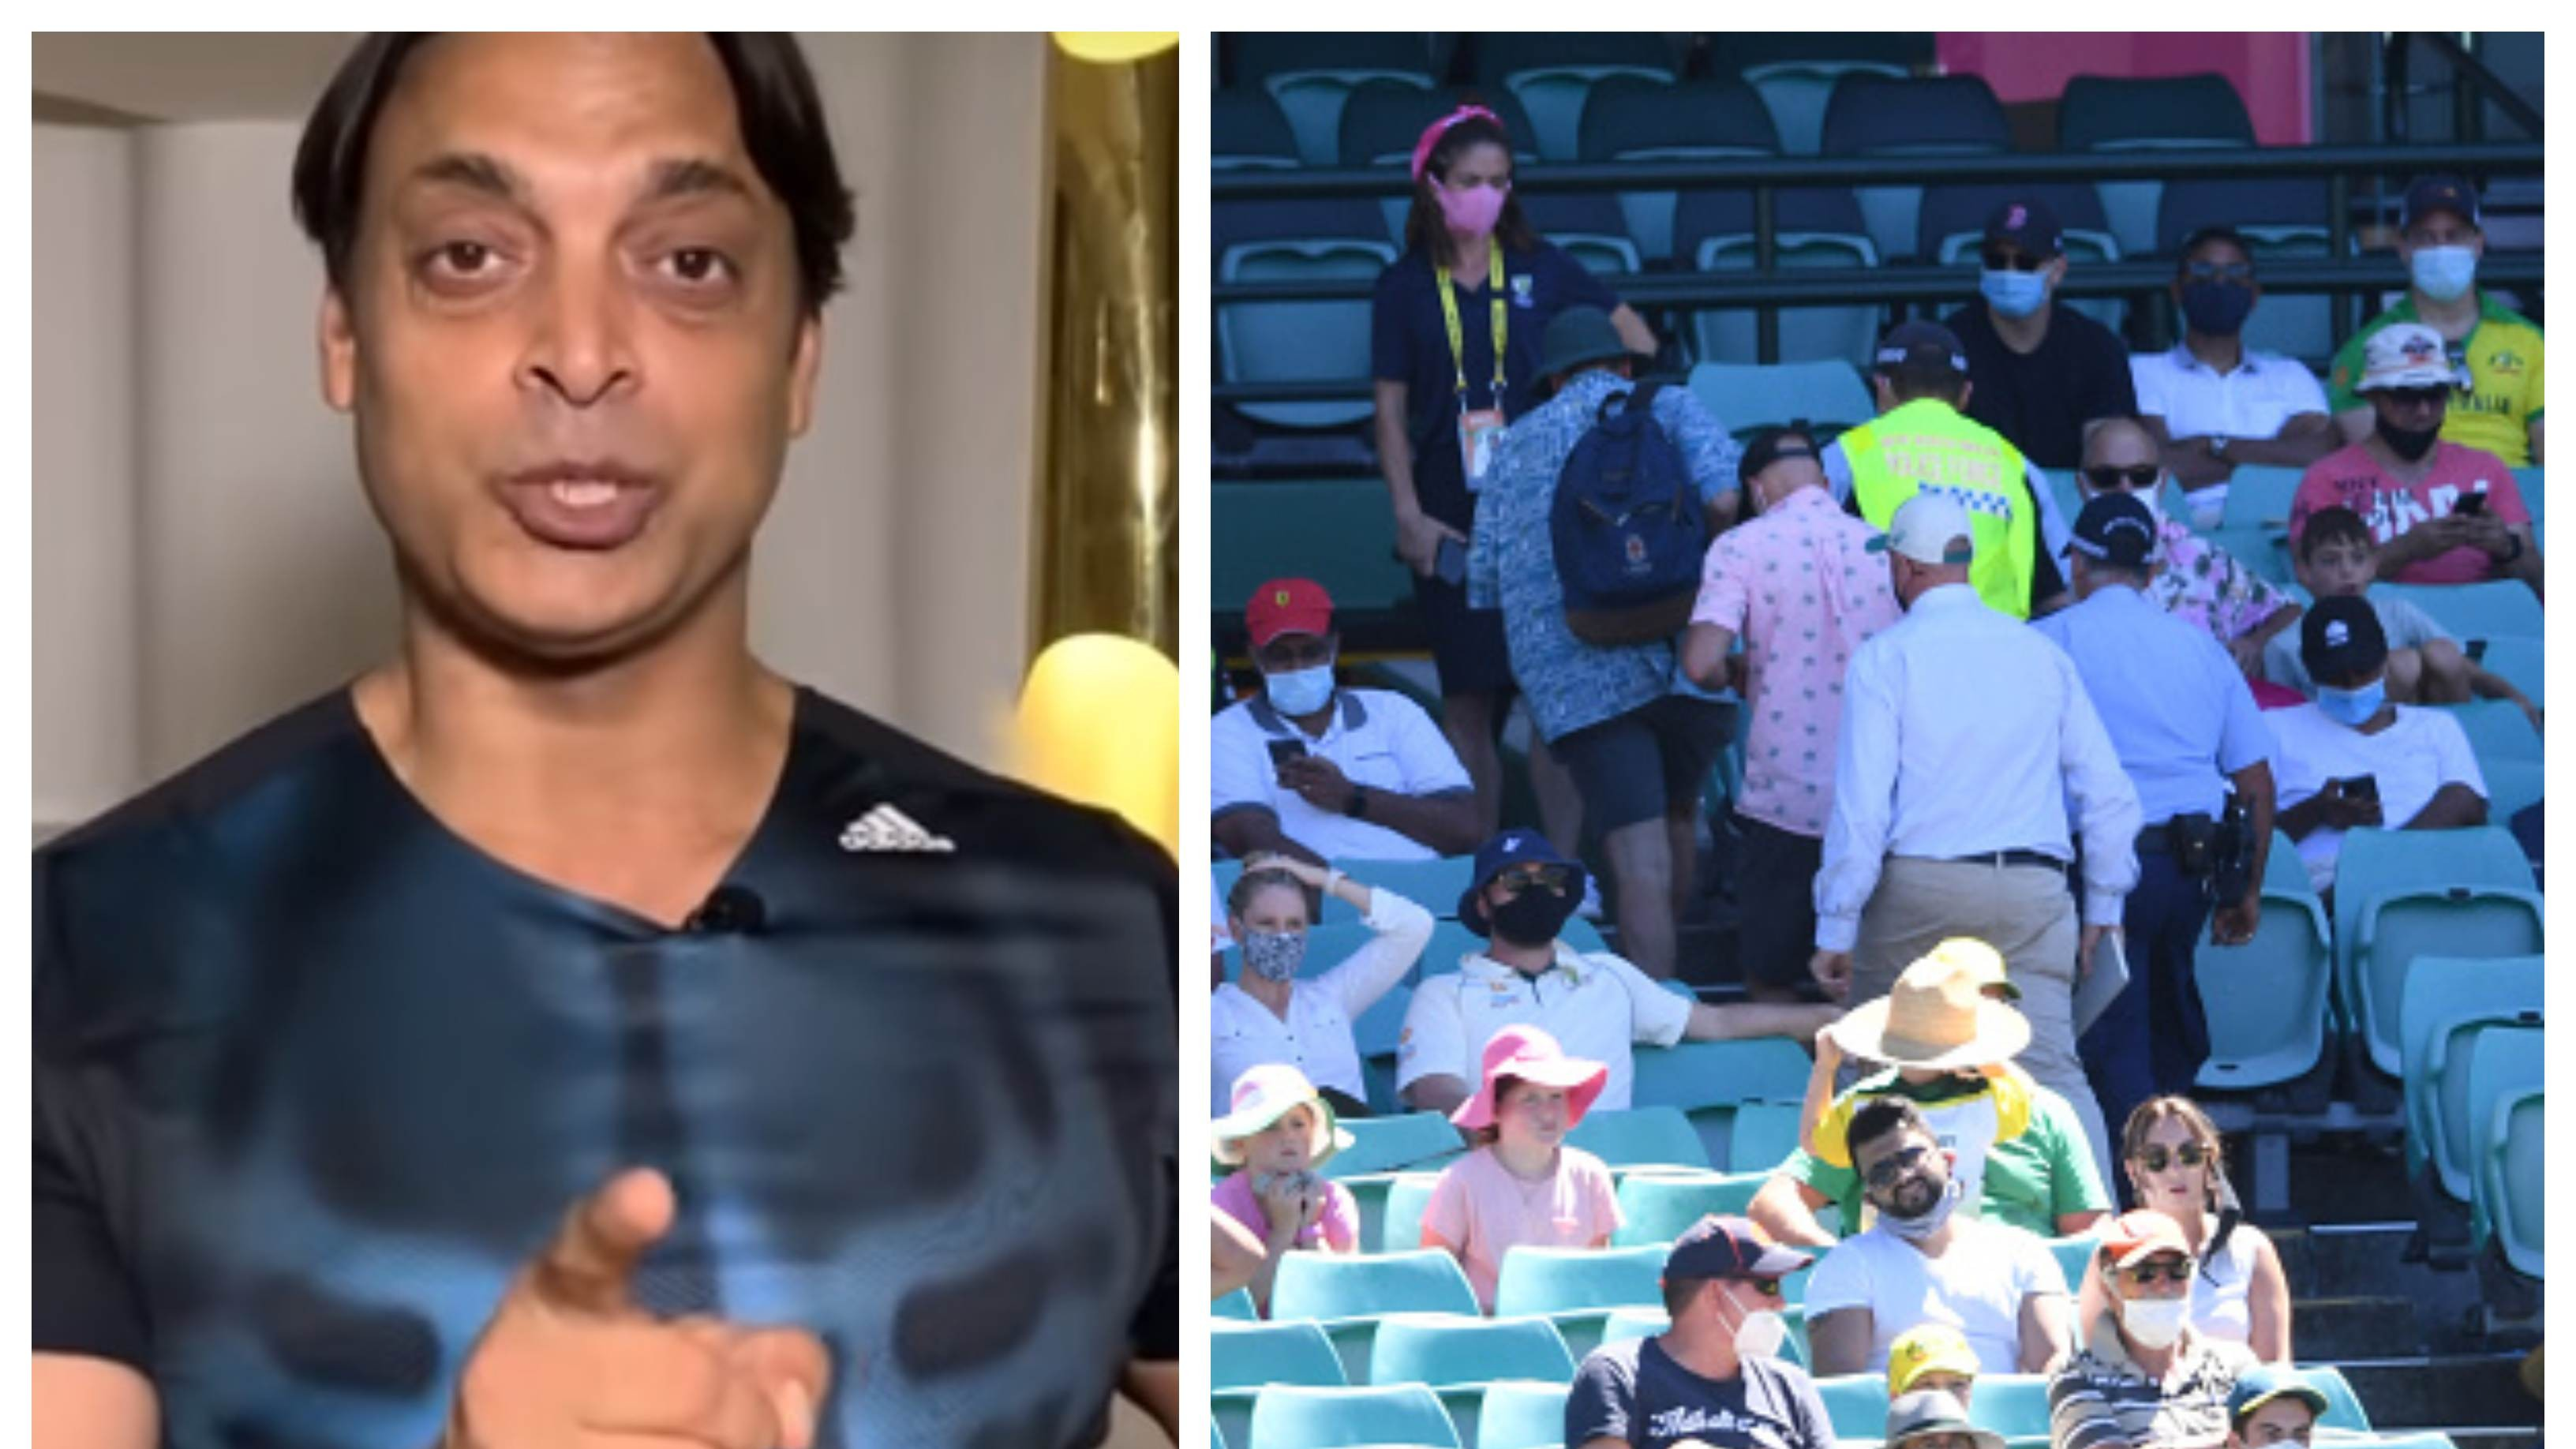 AUS v IND 2020-21: Shoaib Akhtar proposes custodial sentence for offenders involving in racial abuse